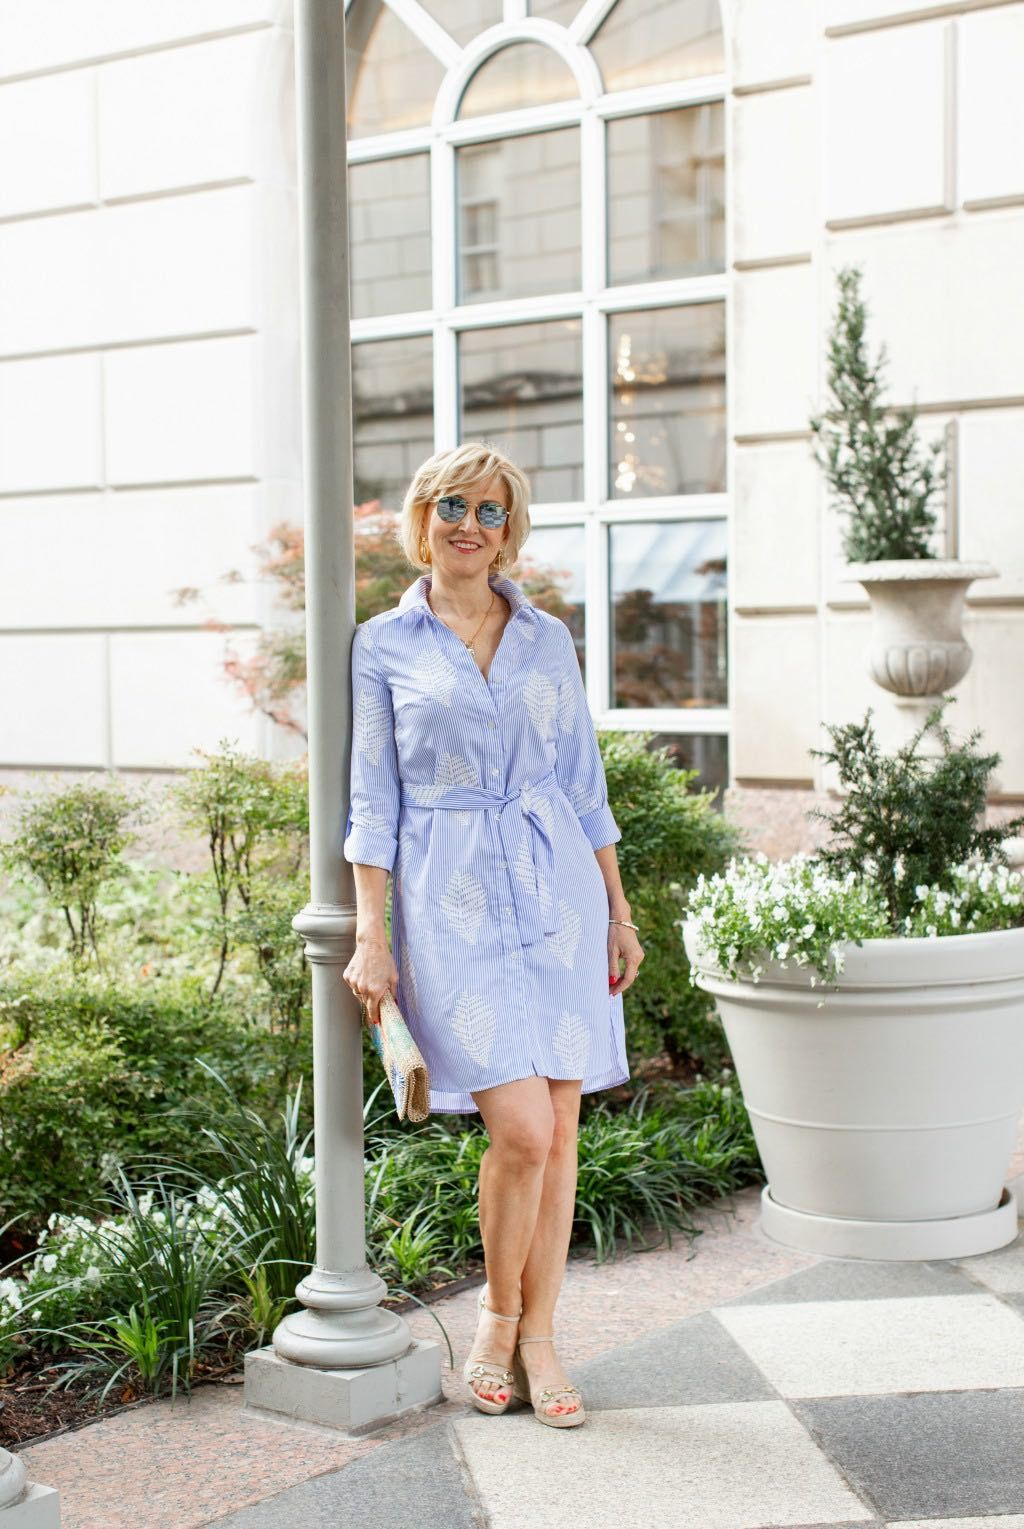 How to Style a Blue and White Striped Shirt Dress for Women